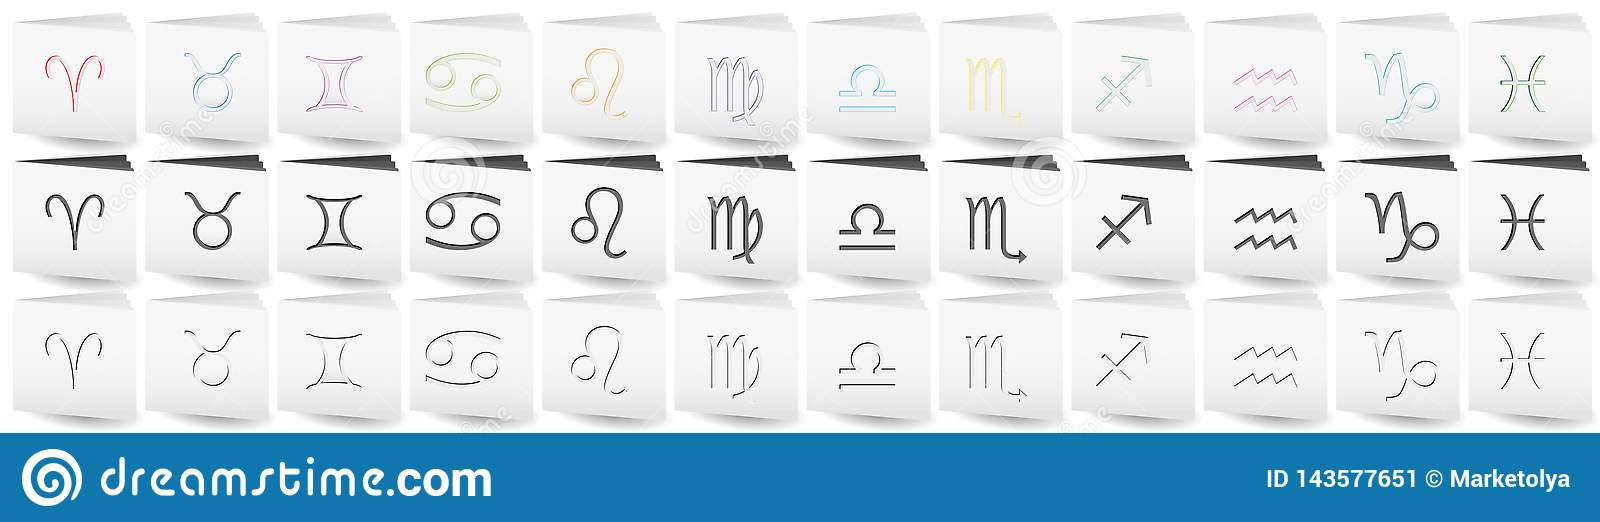 White Folders With Zodiac Signs On Covers Stock Vector